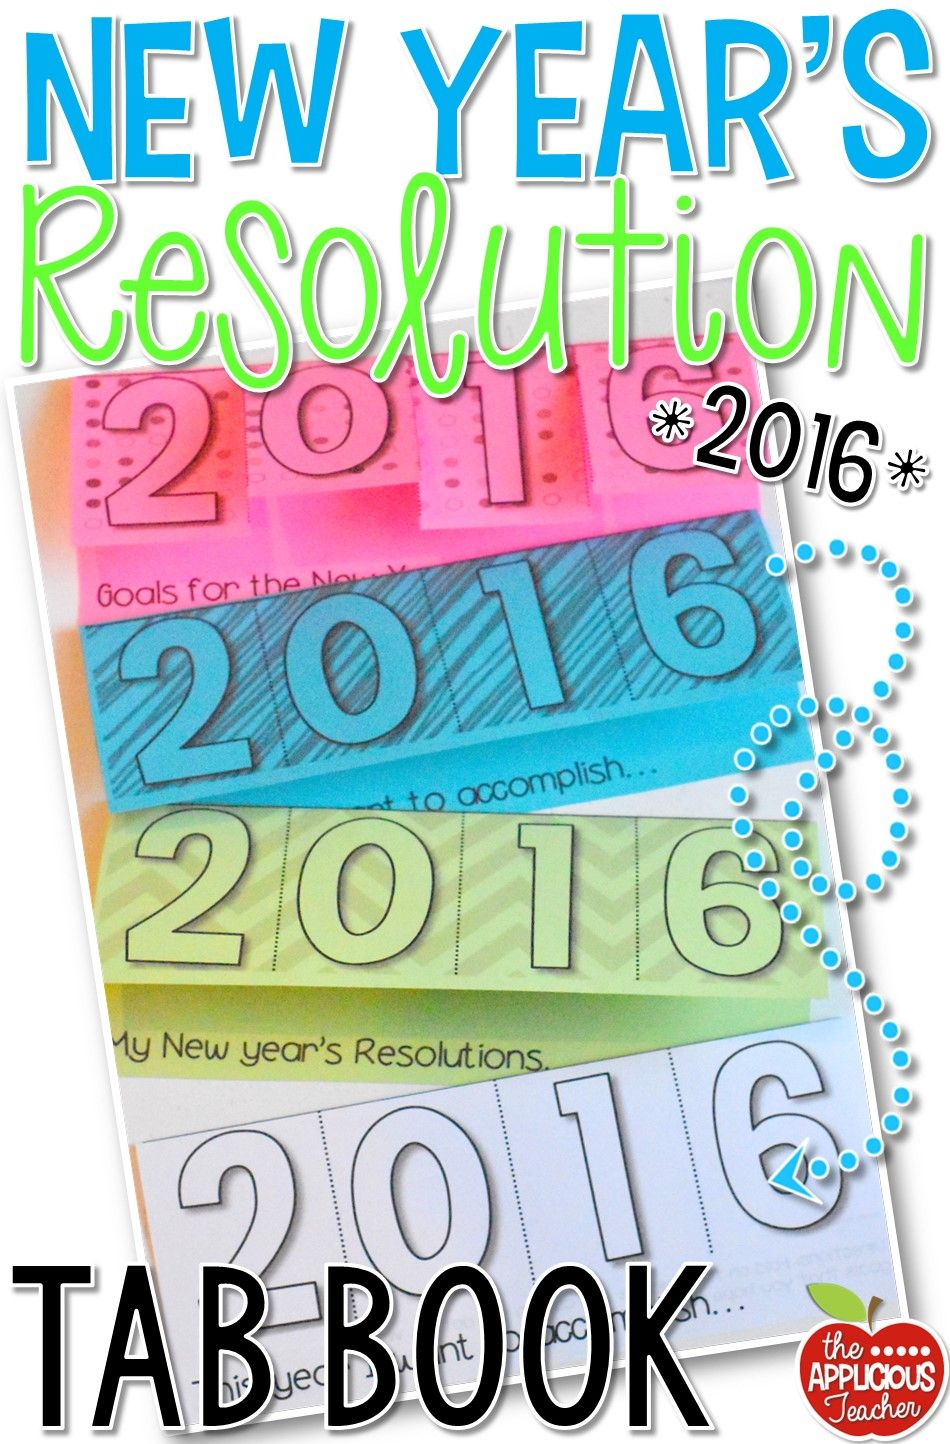 New Year's Resolution Tab Book Student writing, New